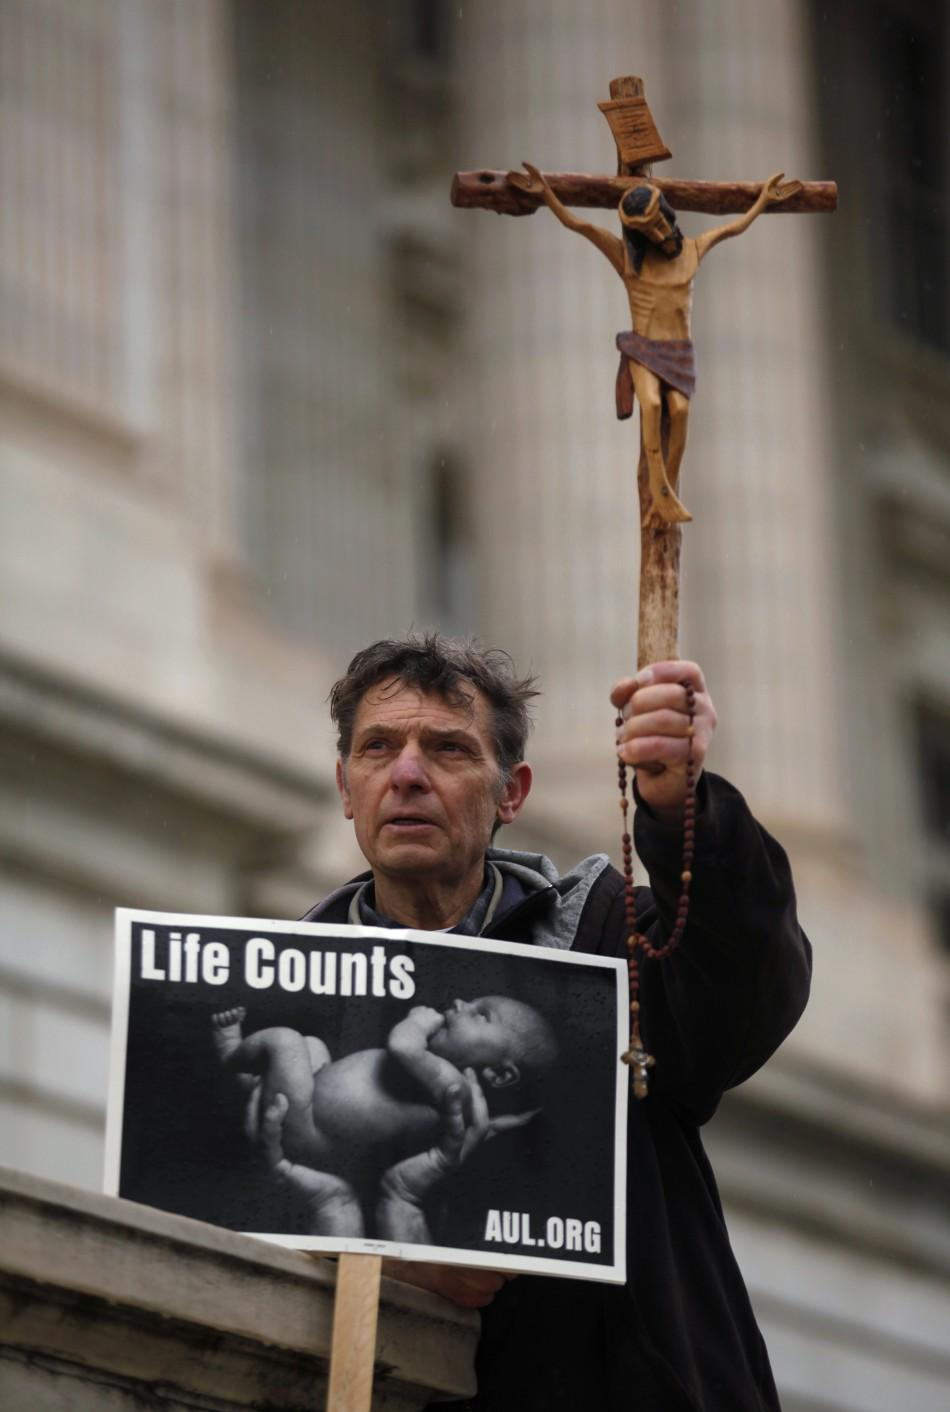 March for Life 2012